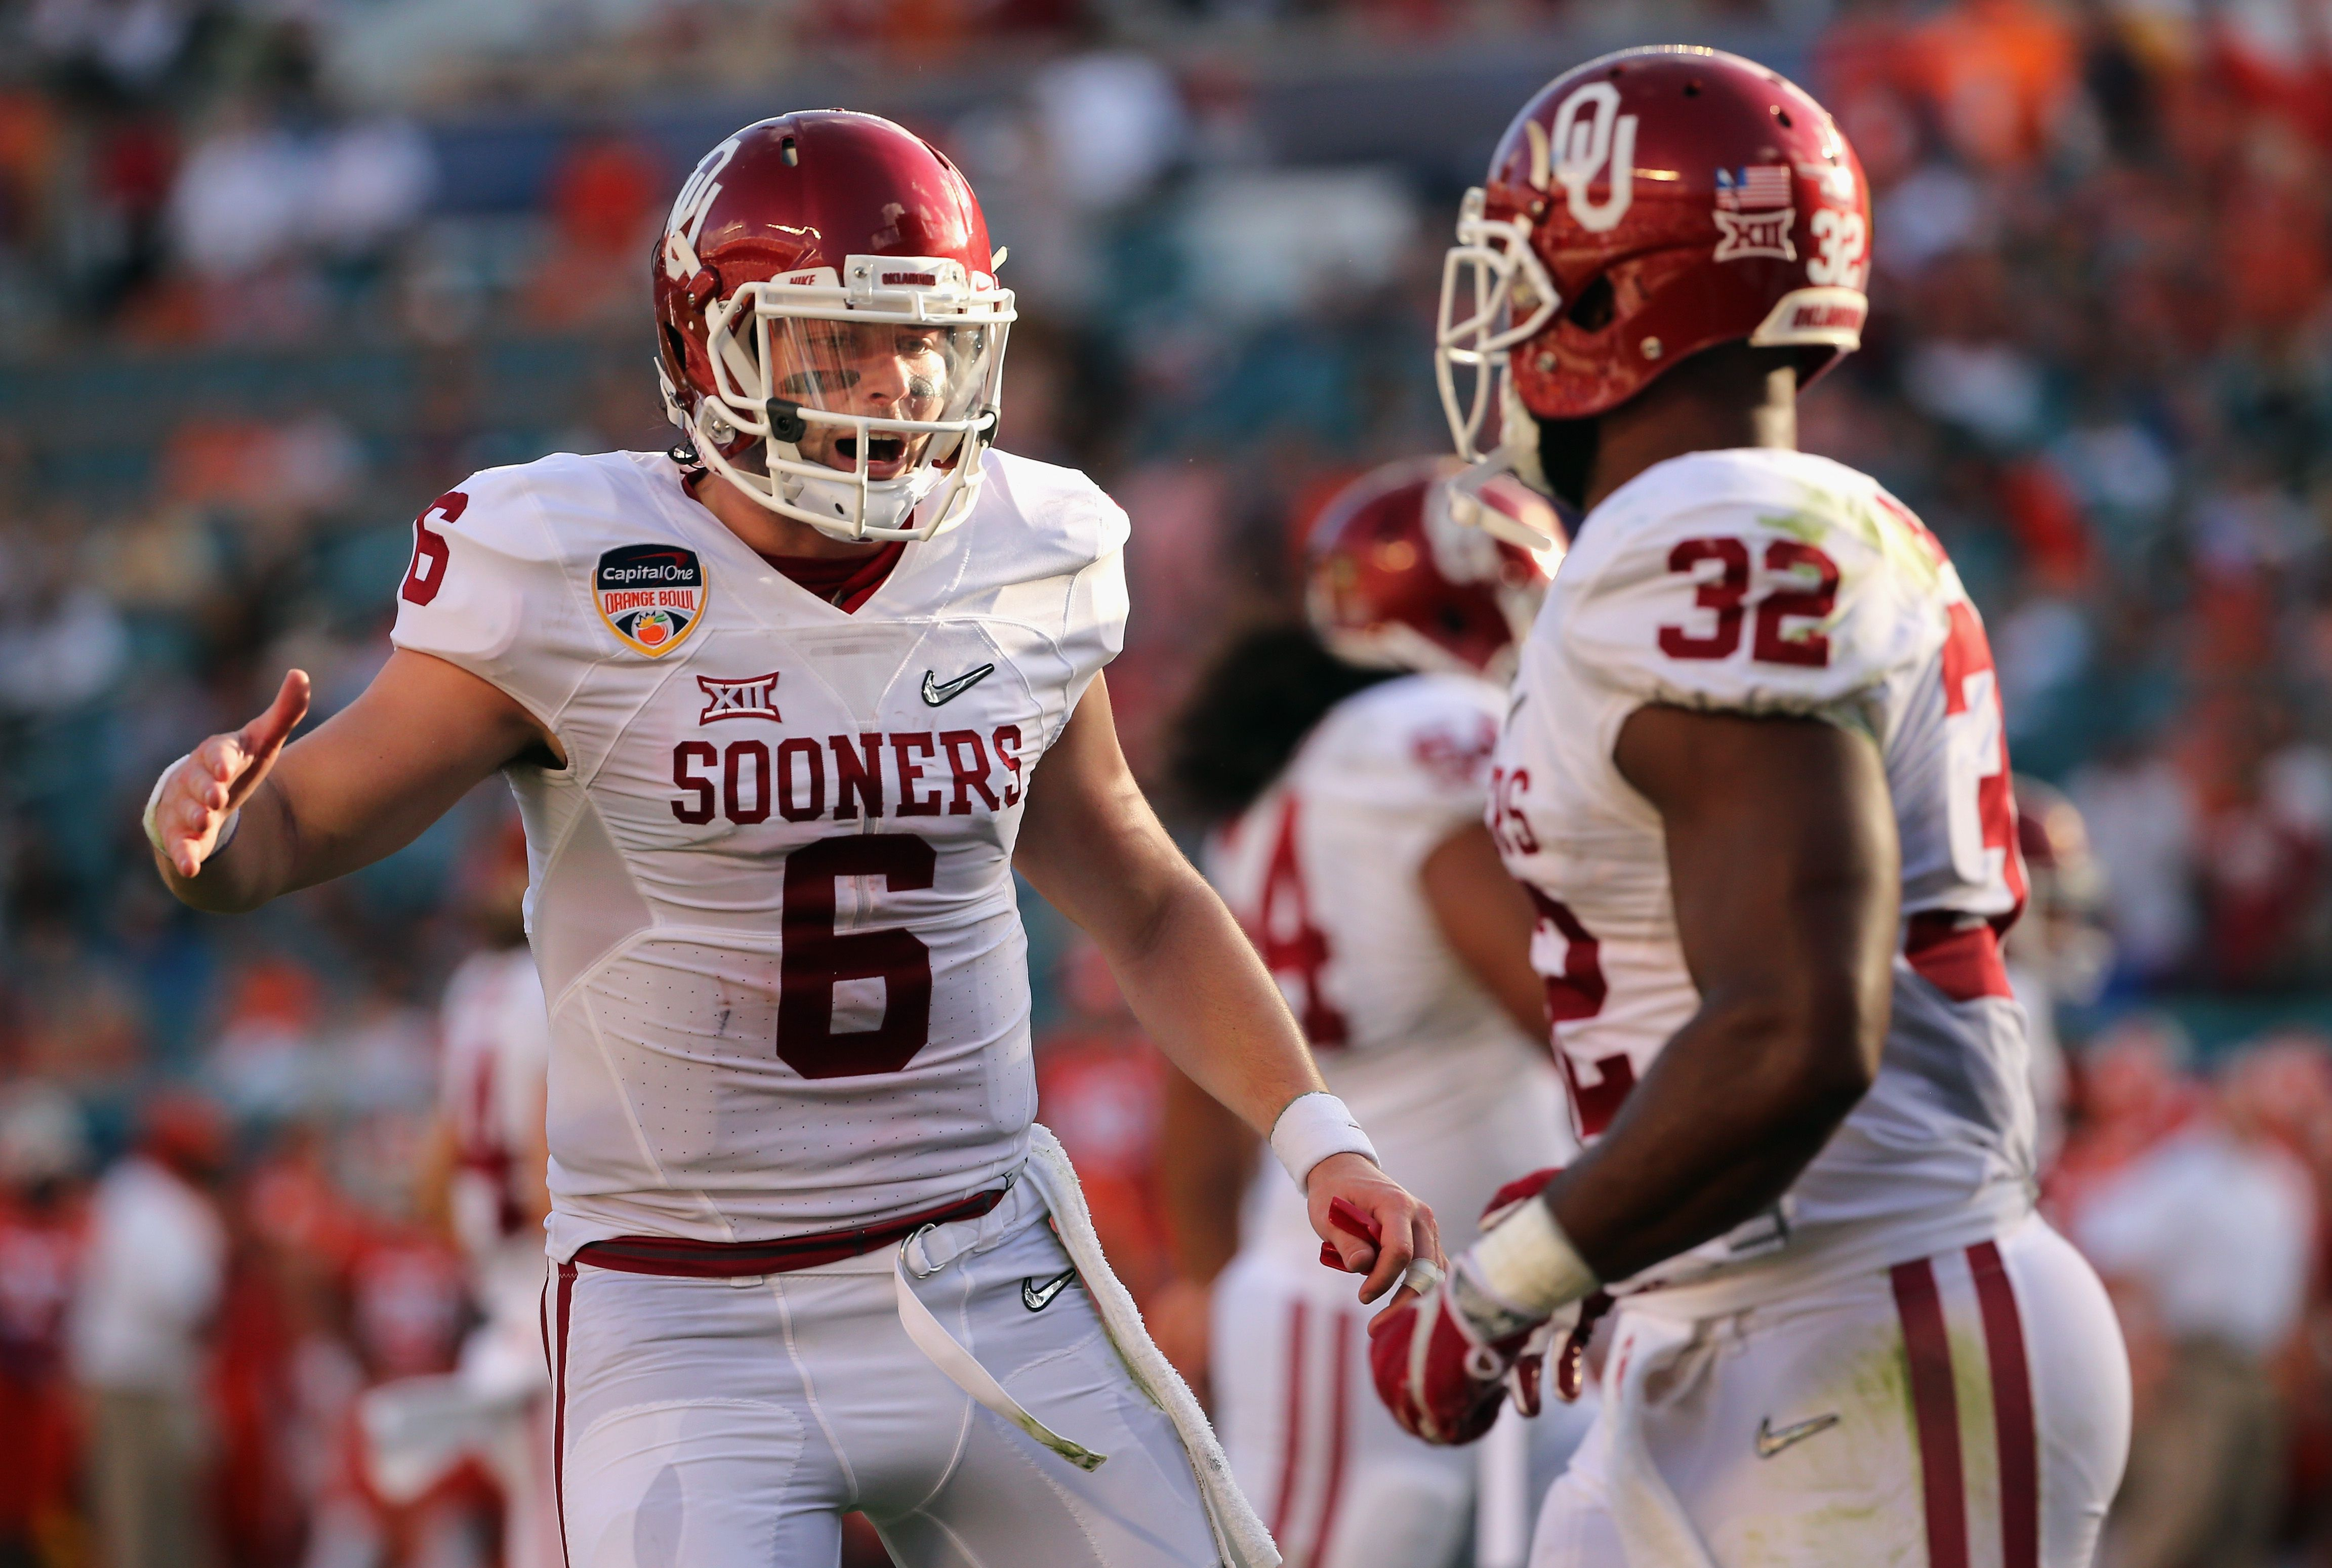 University of Oklahoma Sooners Football - Schedule, Roster ...